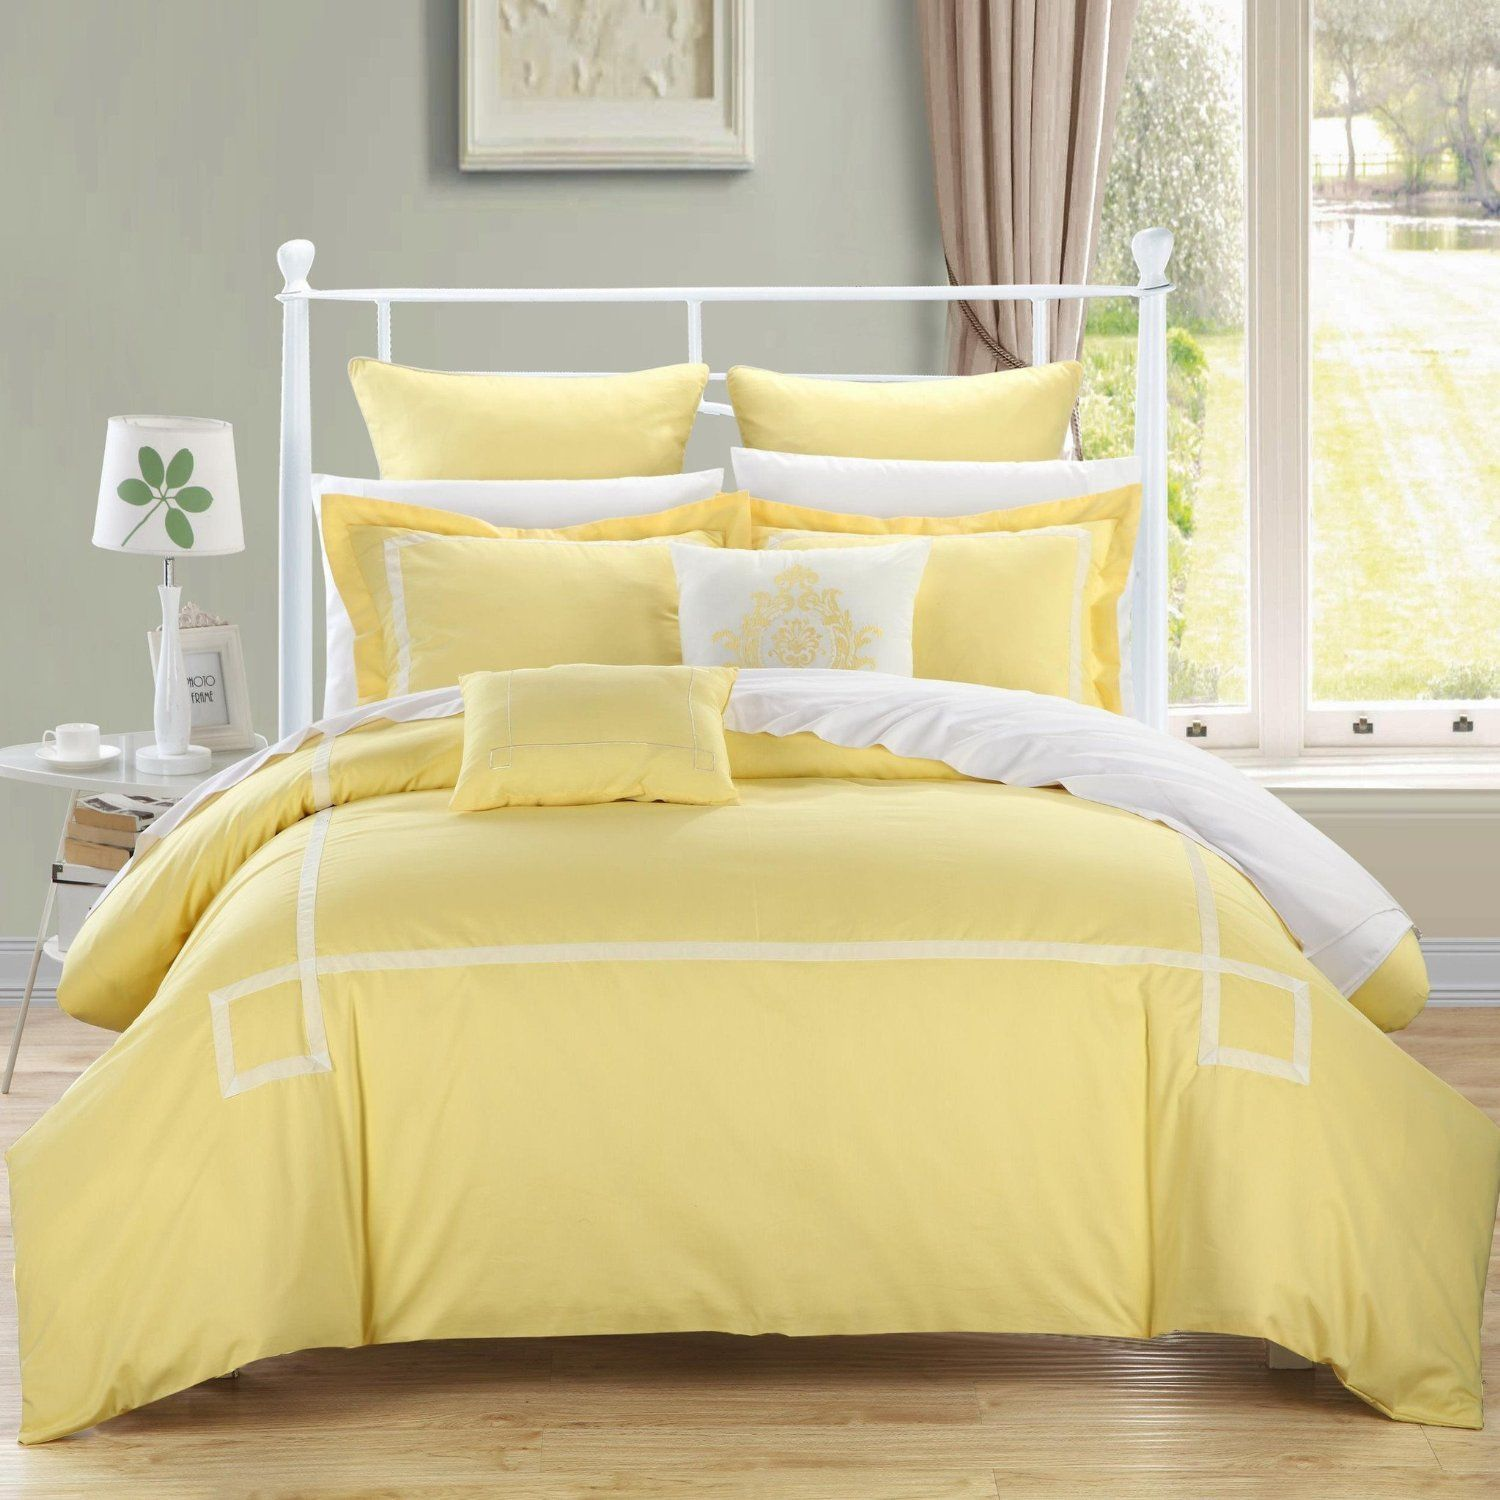 Yellow Comforters And Bedding Sets With Images Yellow Bedding